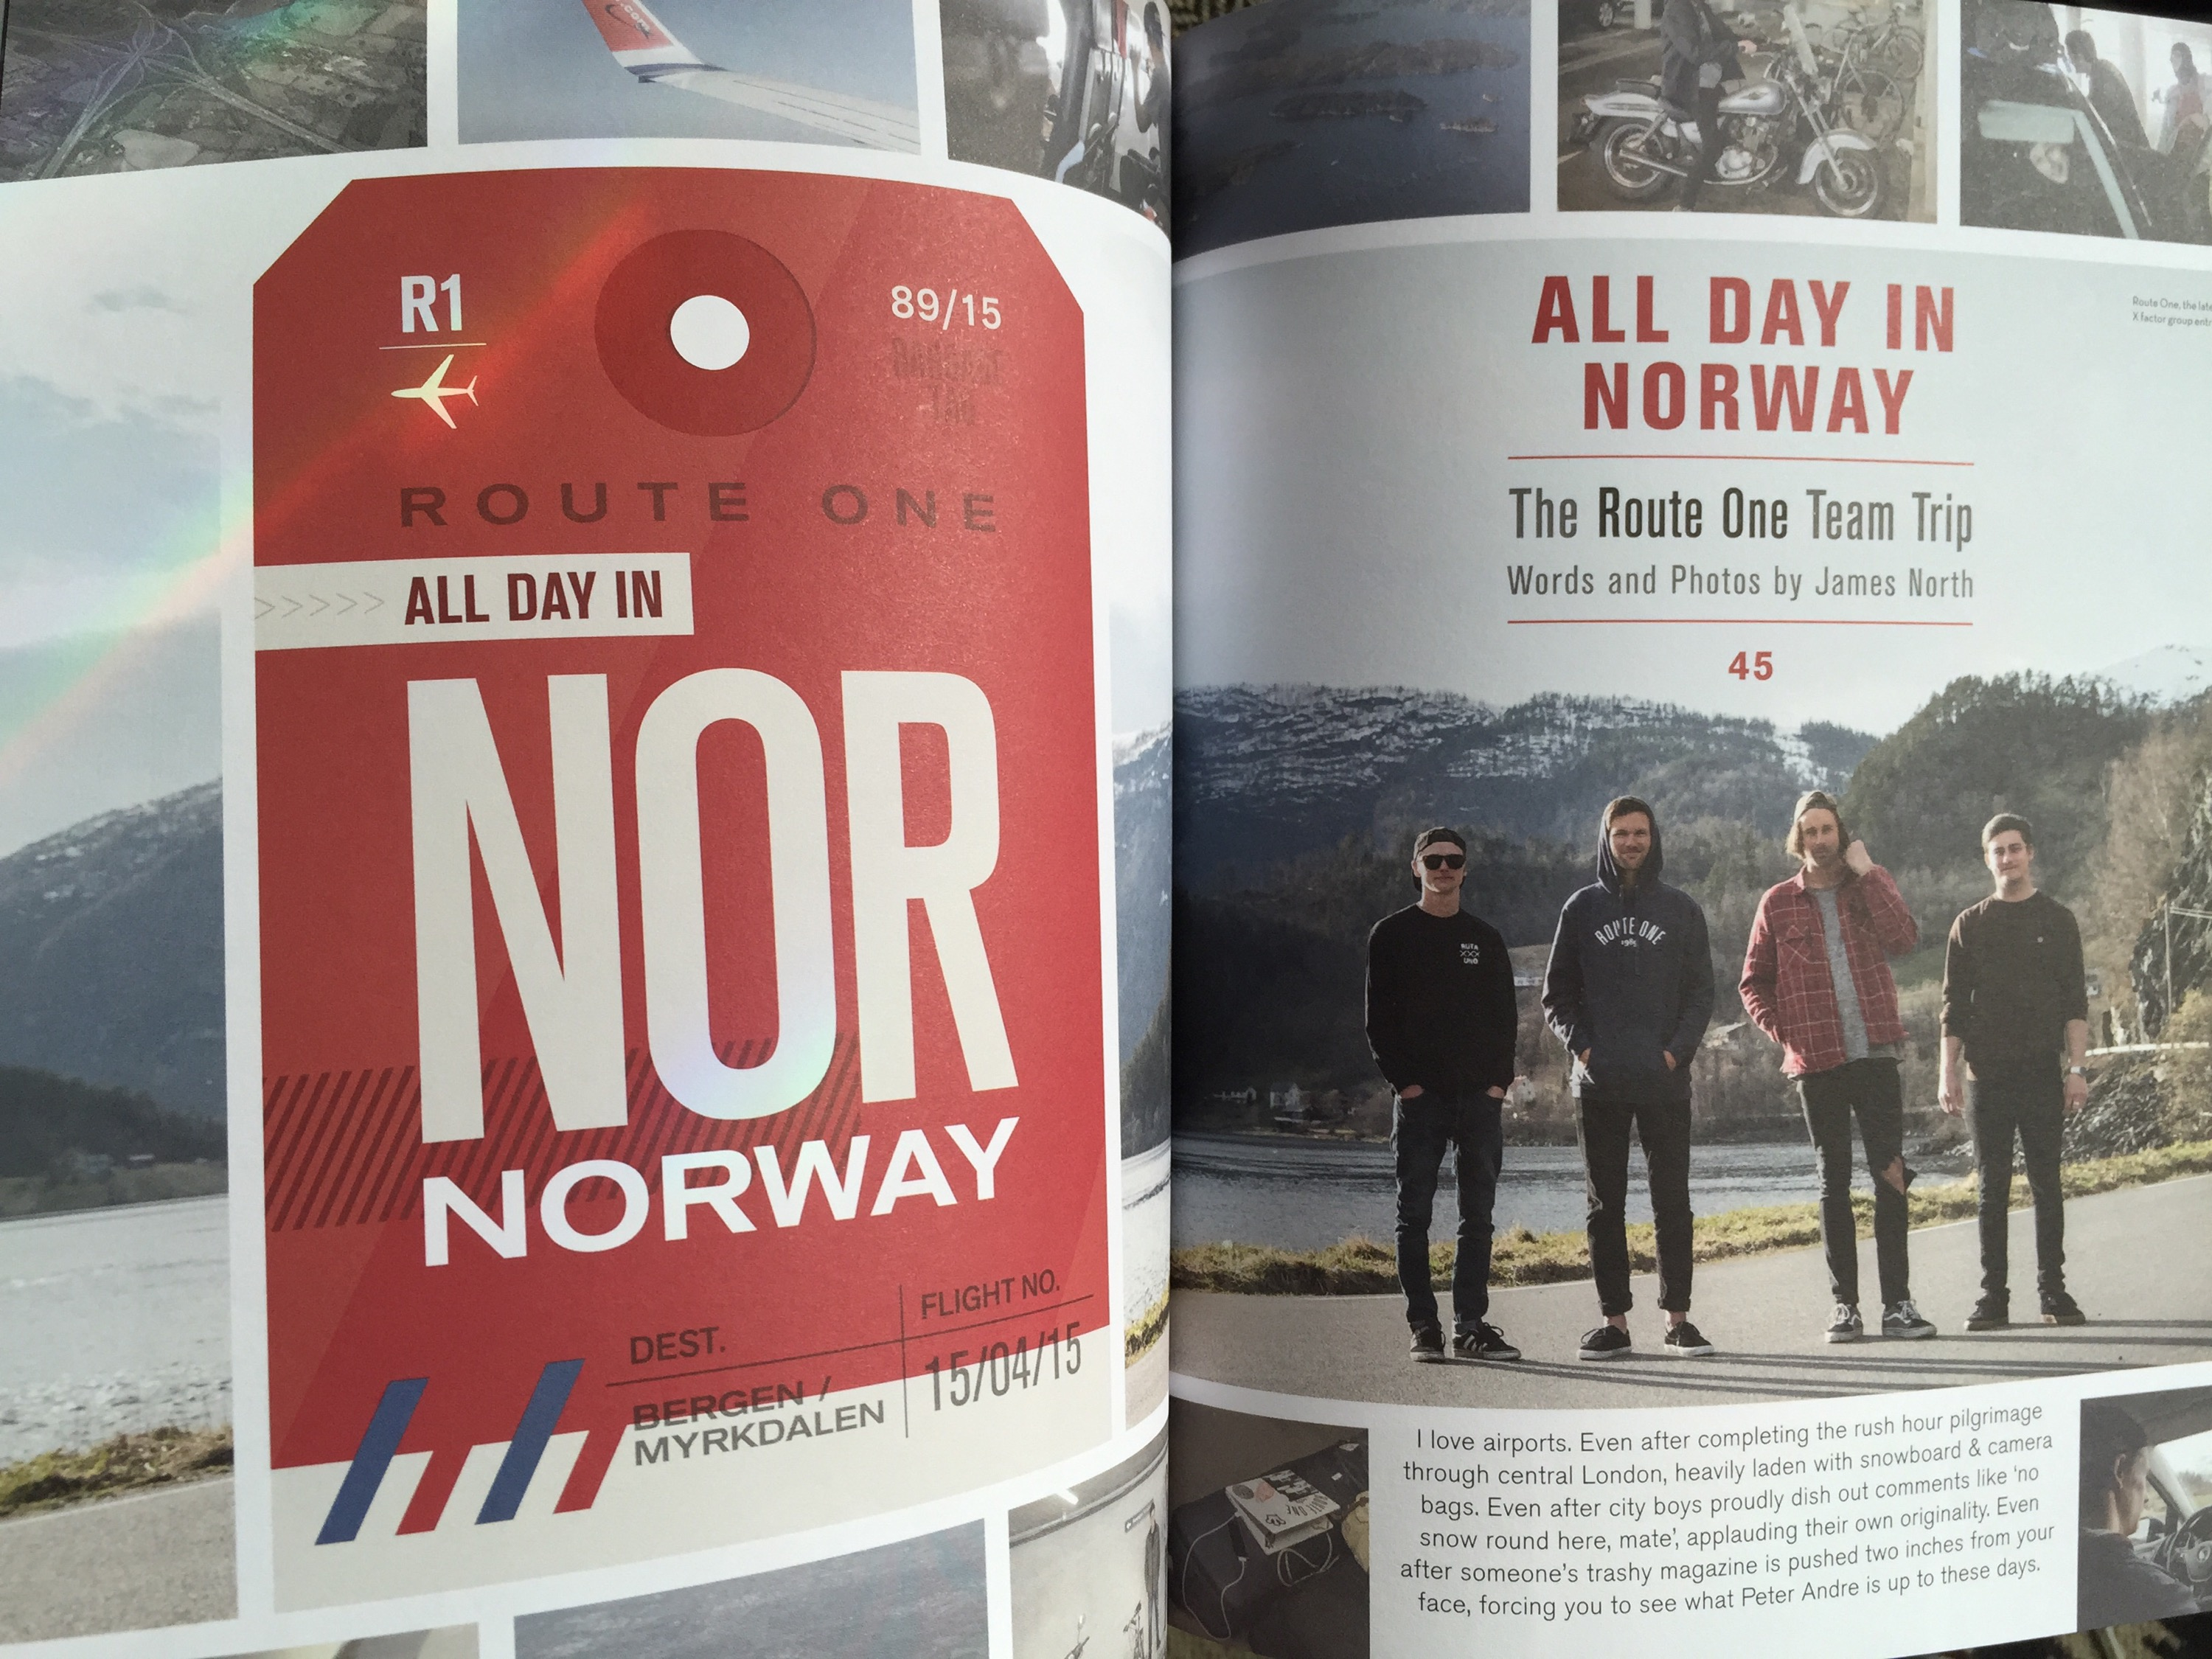 All Day in Norway